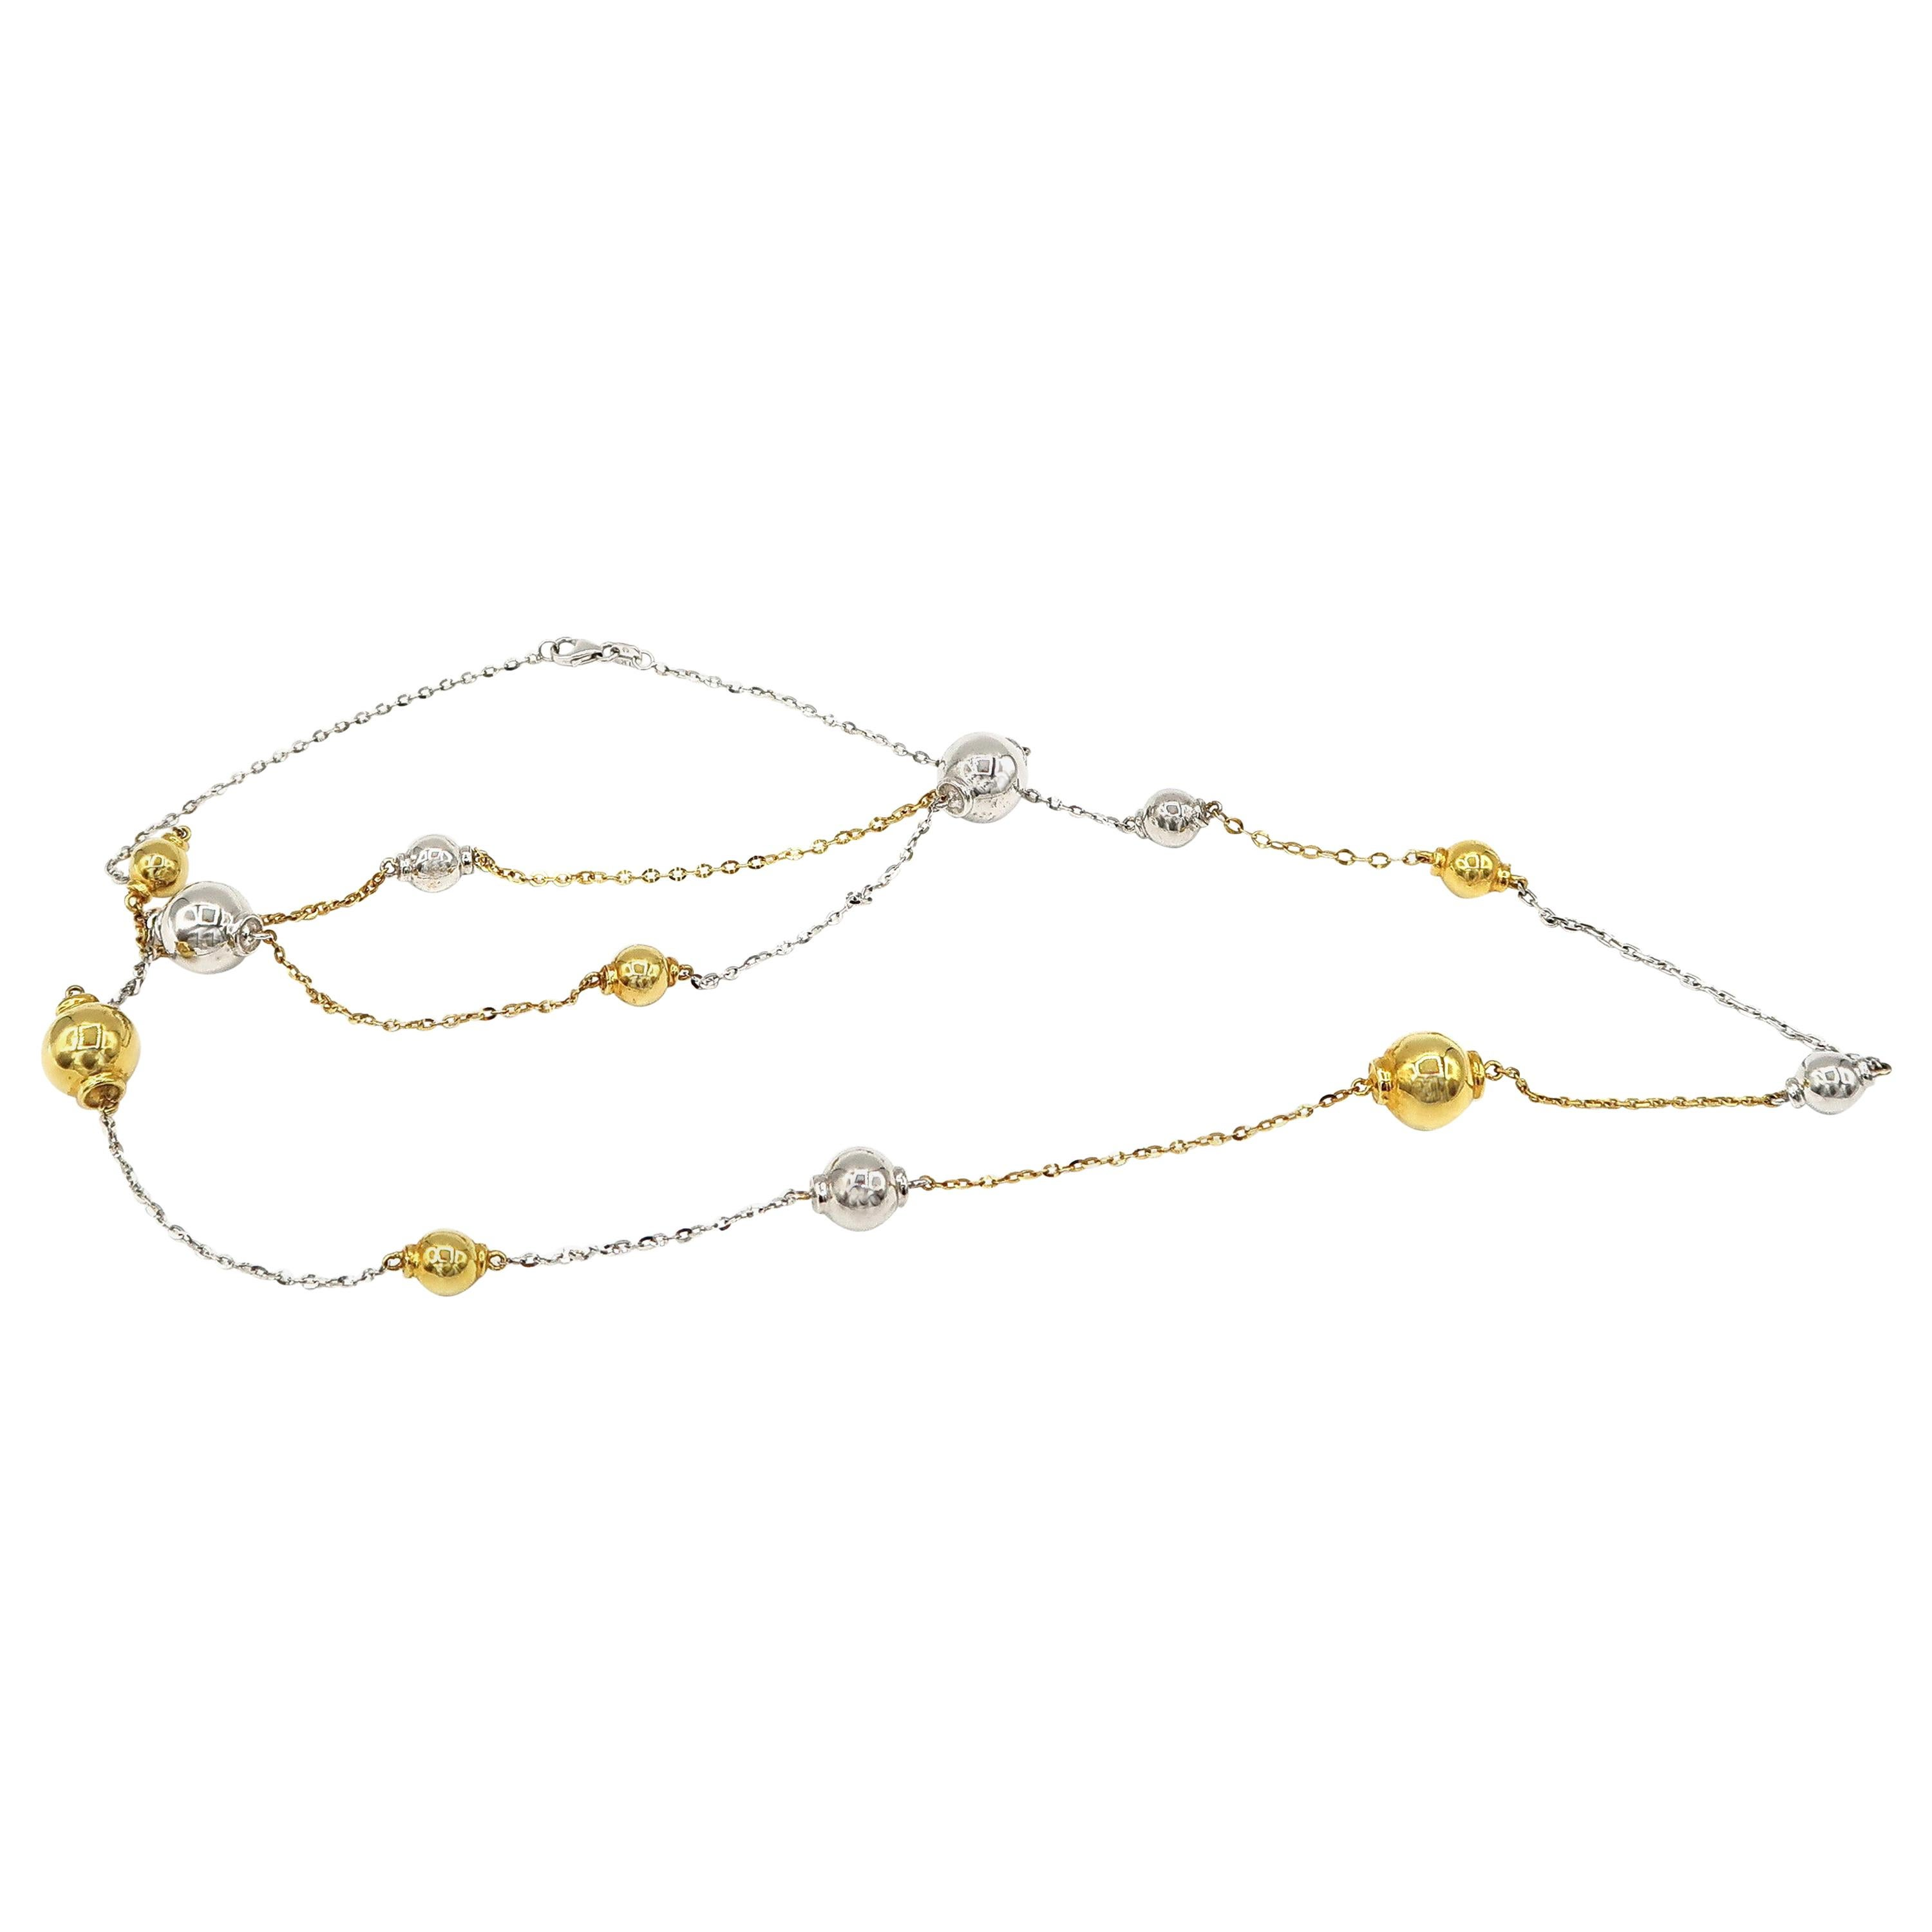 32-inch Delicate Throw-on 18 Karat White and Yellow Gold Ball and Chain Necklace